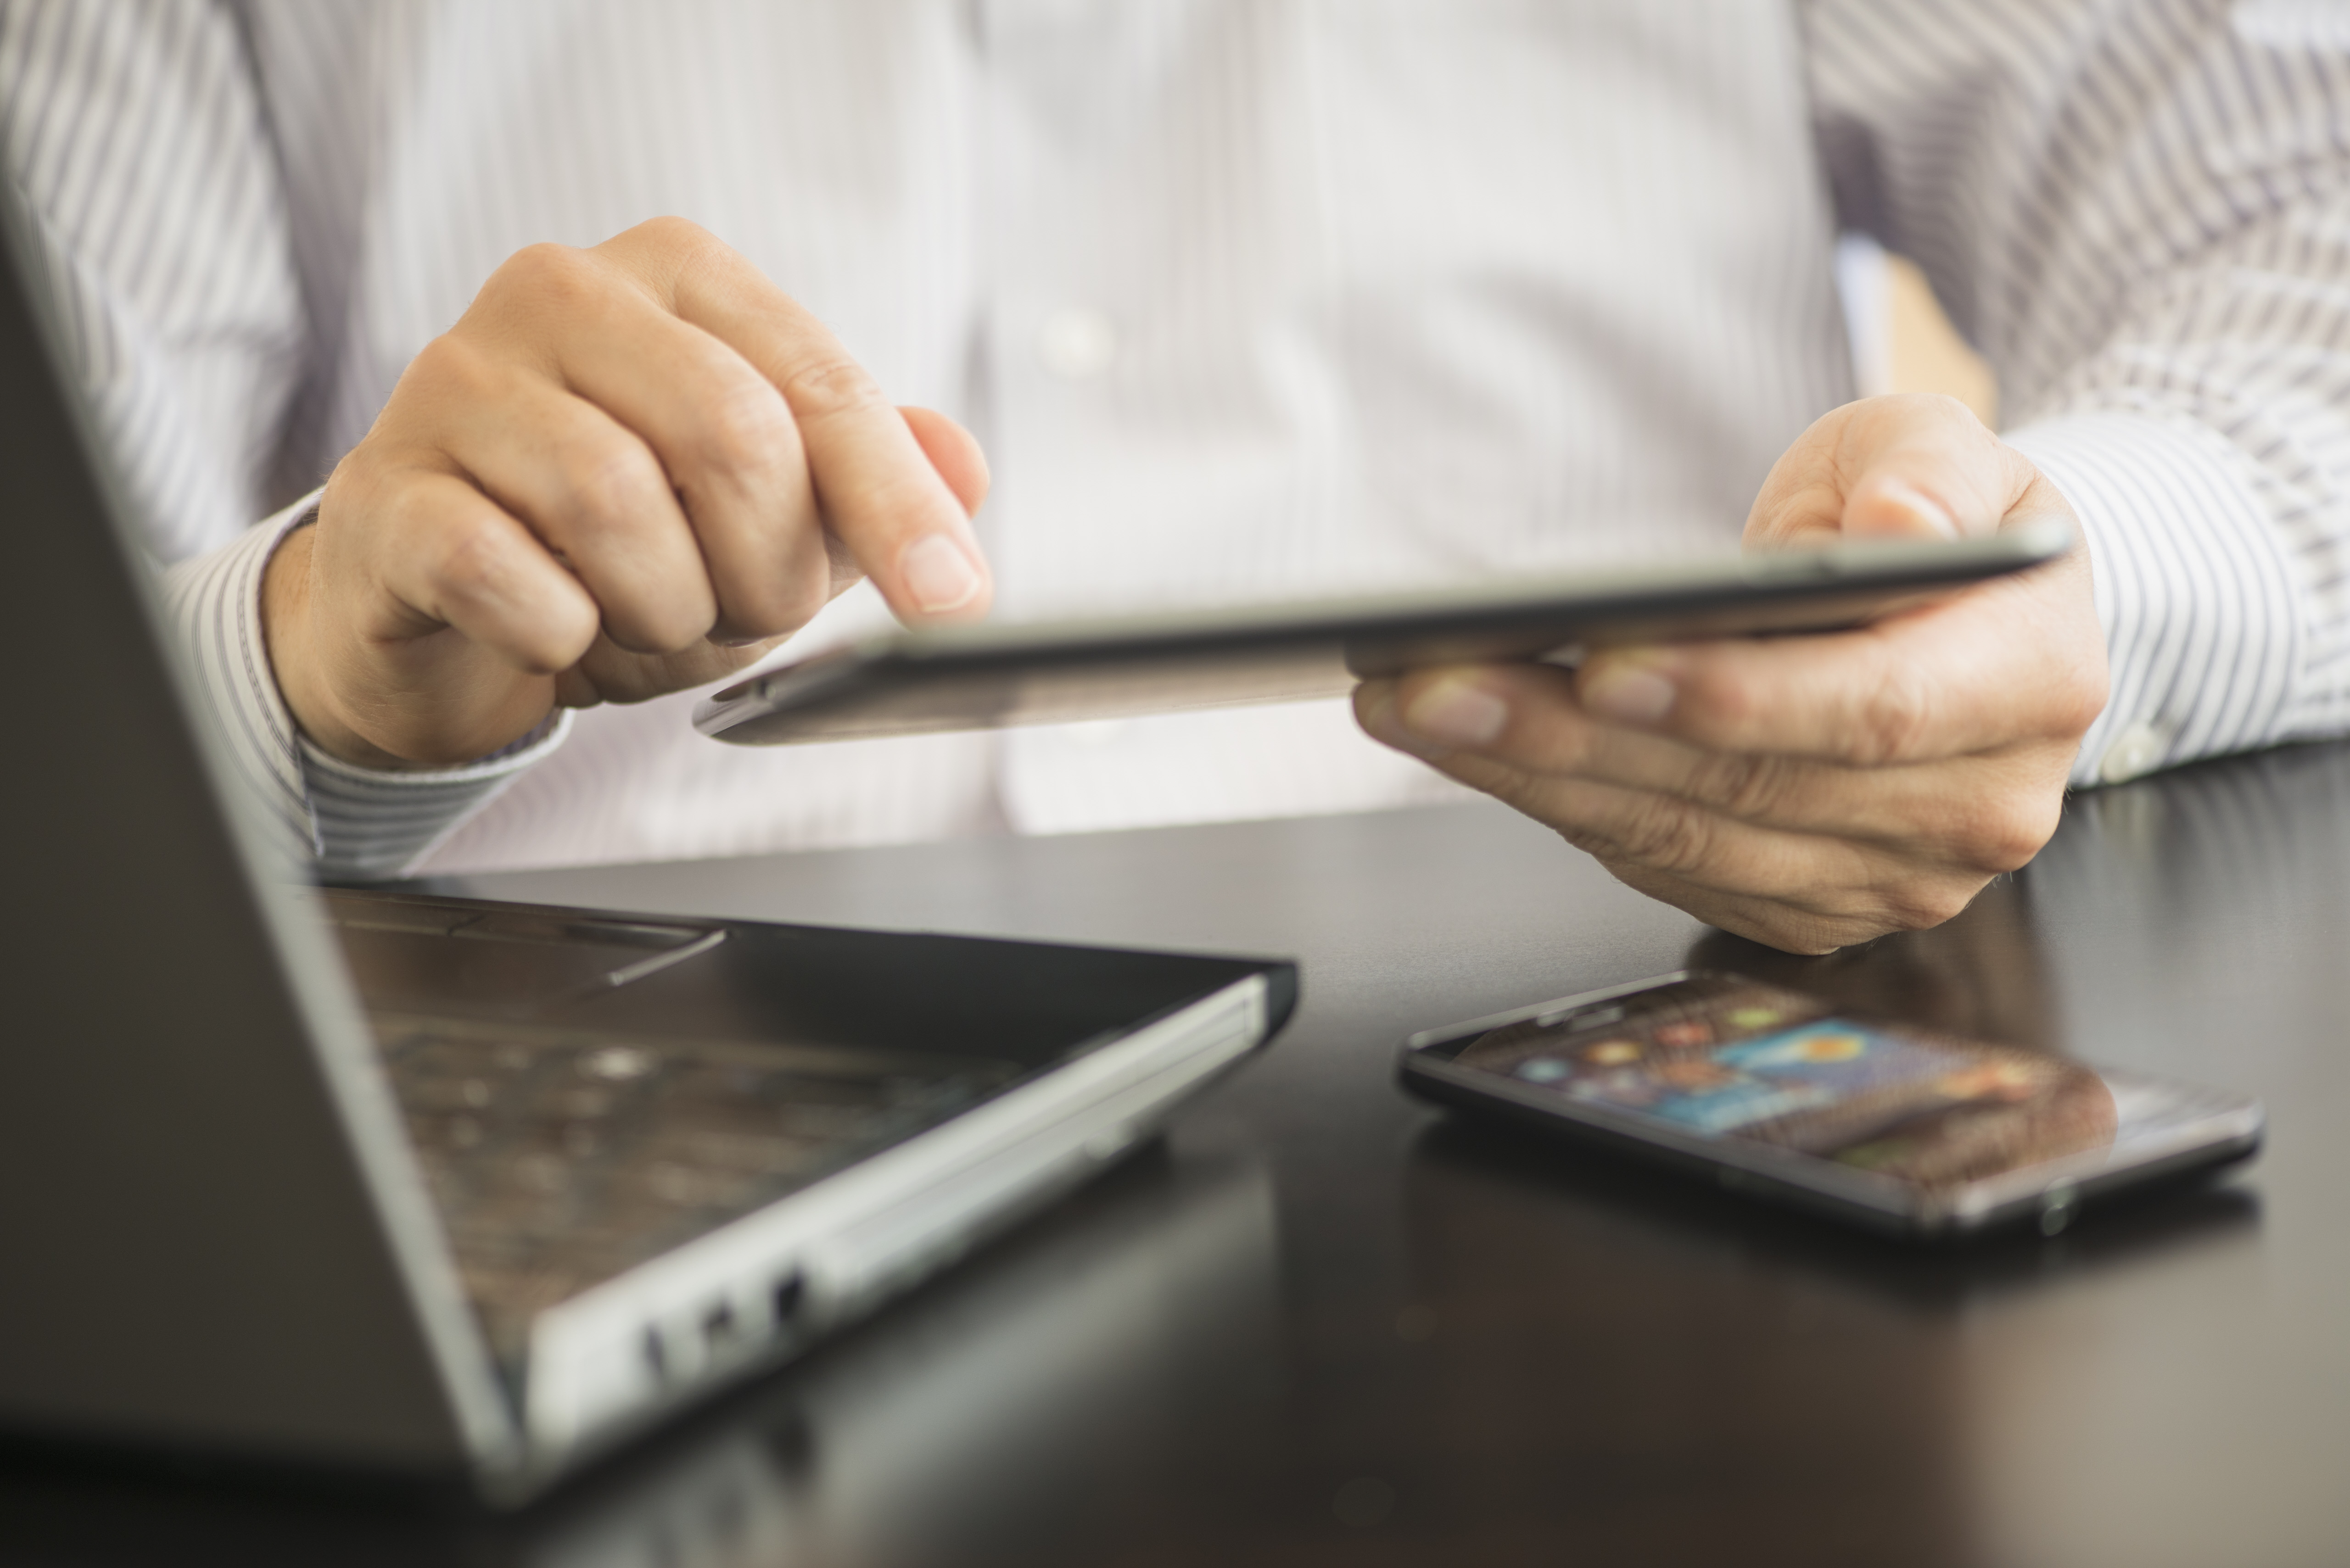 A man uses his tablet PC, laptop and smartphone.